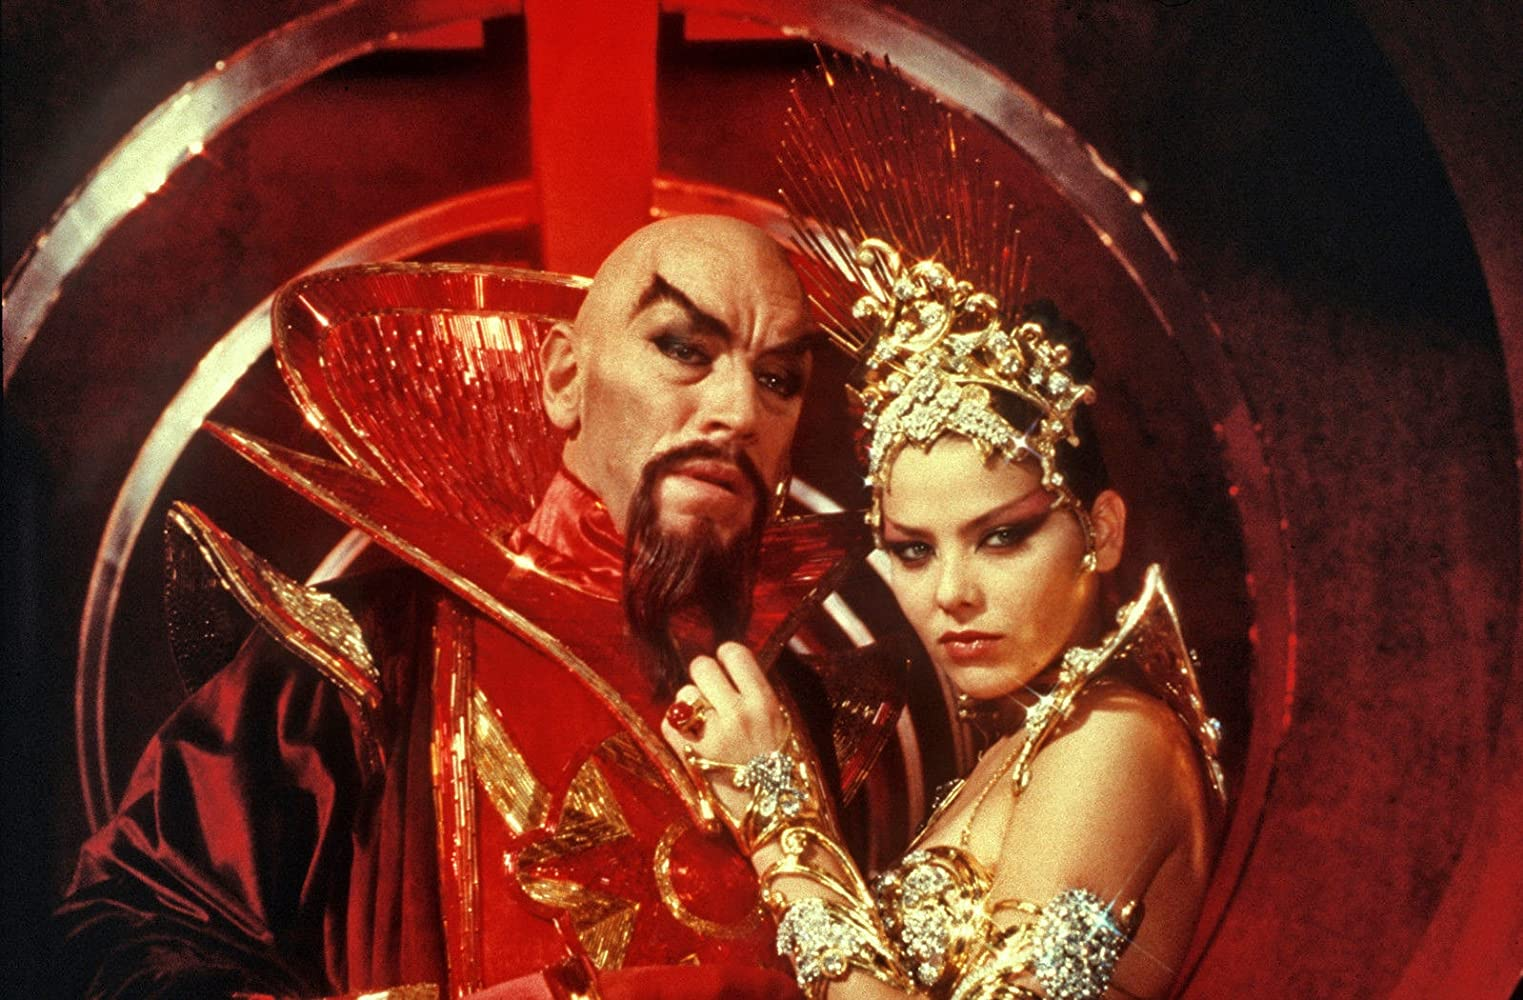 Ornella Muti and Max von Sydow in Flash Gordon (1980)